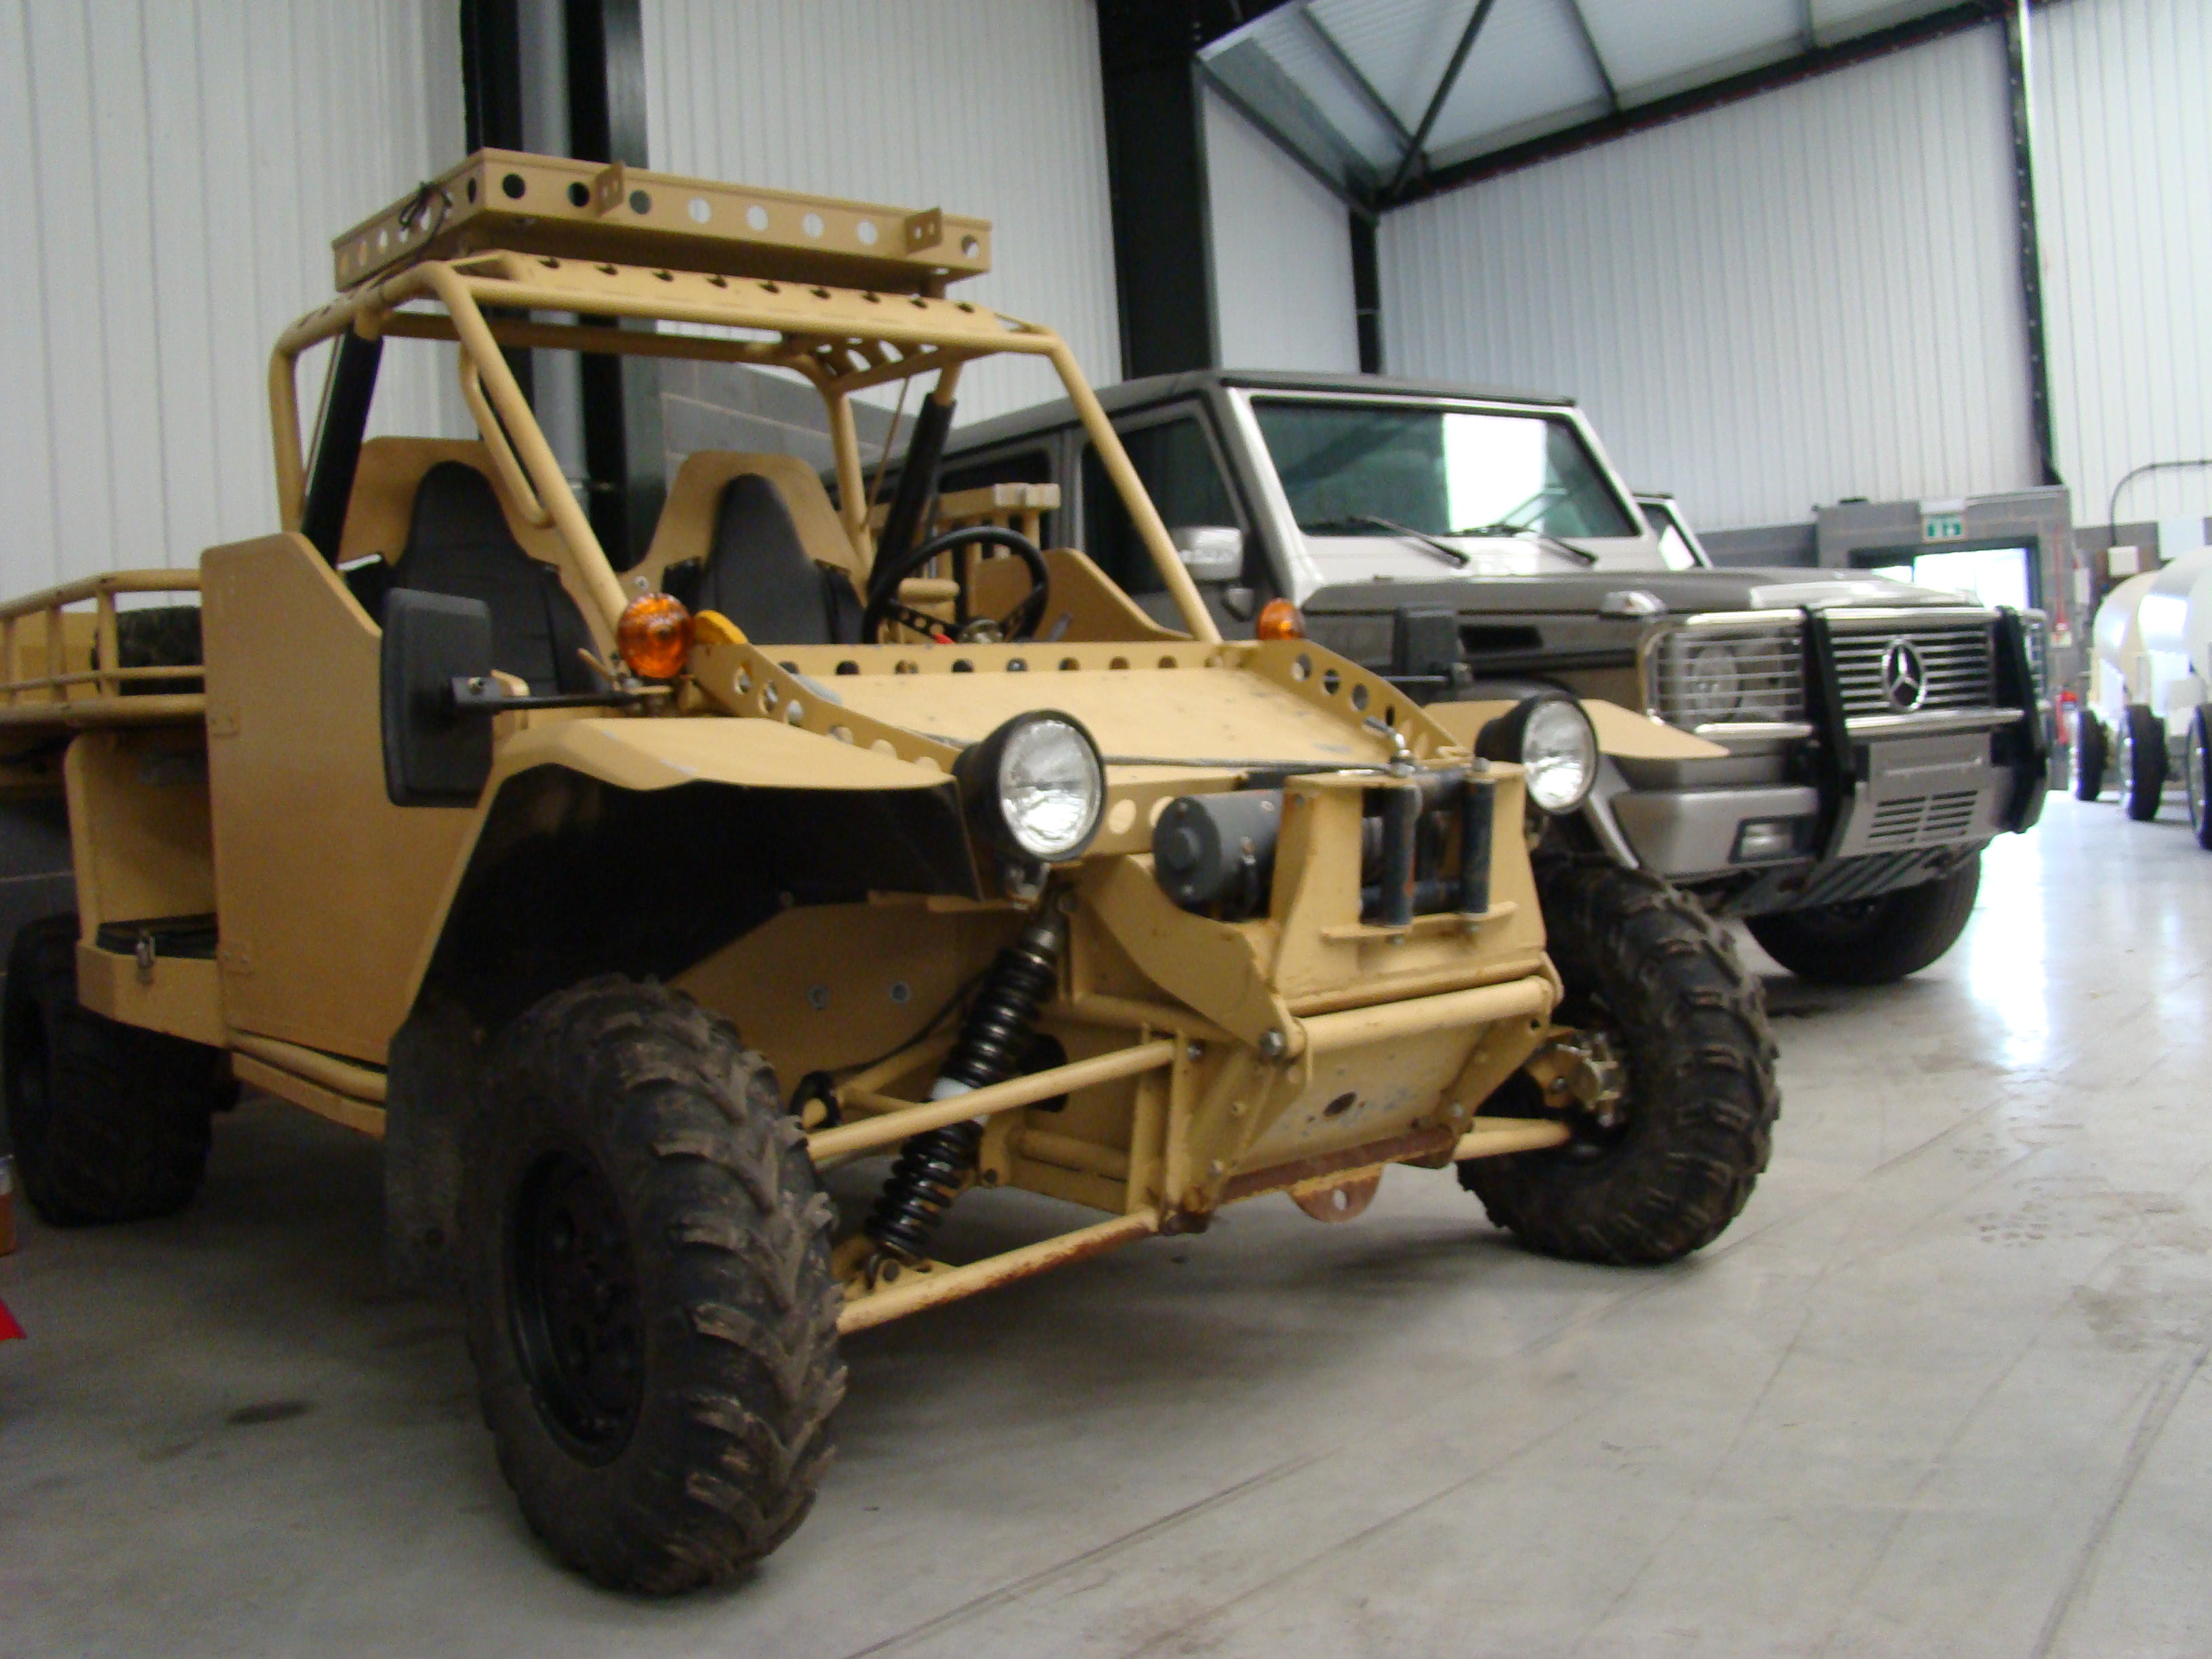 Was sold EPS Springer ATV Armoured Vehicle Ex military vehicles for